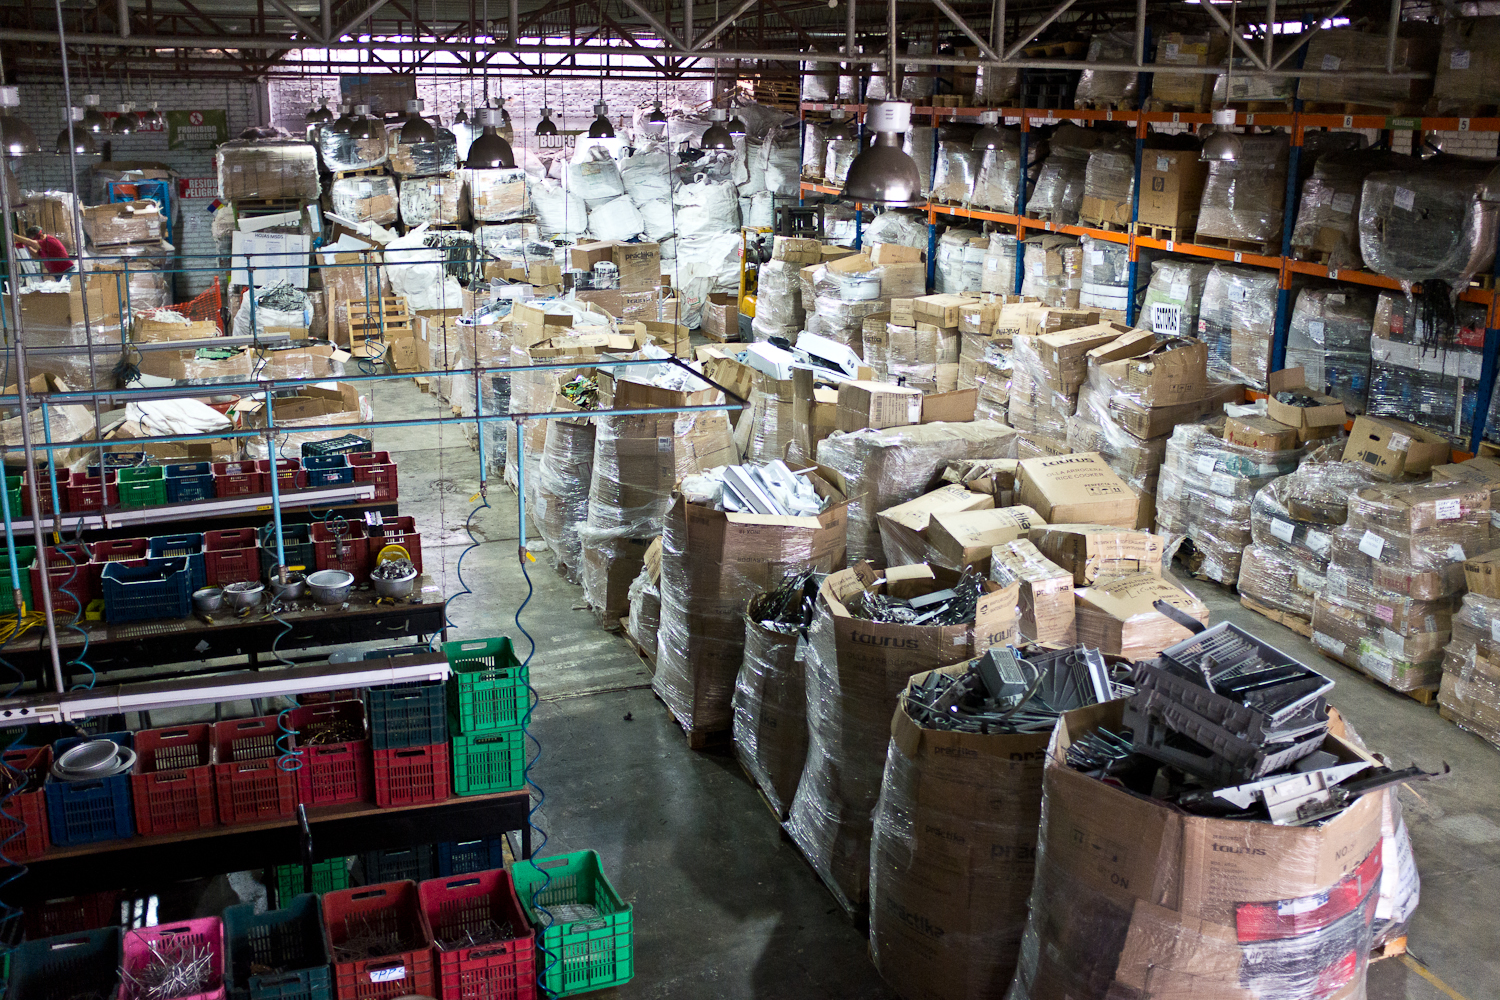 Extended Producer Responsibility legislation in Peru, where manufacturers pay into a recycling system to ensure that products are safely recycled, has given rise to an emerging formal electronics recycling sector. At Peru Green's recycling facility, products are dismantled at workstations (left) and materials are sorted into giant bins. A small percentage of components are sold to a local metals processor. The majority of components, such as printed circuit boards and copper cables, are shipped to either the U.S., Europe or China for further processing since Peru Green does not currently have a mechanism for further reducing or shredding components down to their commodity, or raw material, level. Peru Green's recycling contracts with institutions prohibit reuse, thus incentivizing exports of components to regions where they have high market value. In Peru, a less industrialized country, formal recyclers have limited options for processing components beyond dismantling them, highlighting the need to shore up transparency and certification schemes for recyclers across all industrialized and non-industrialized markets.